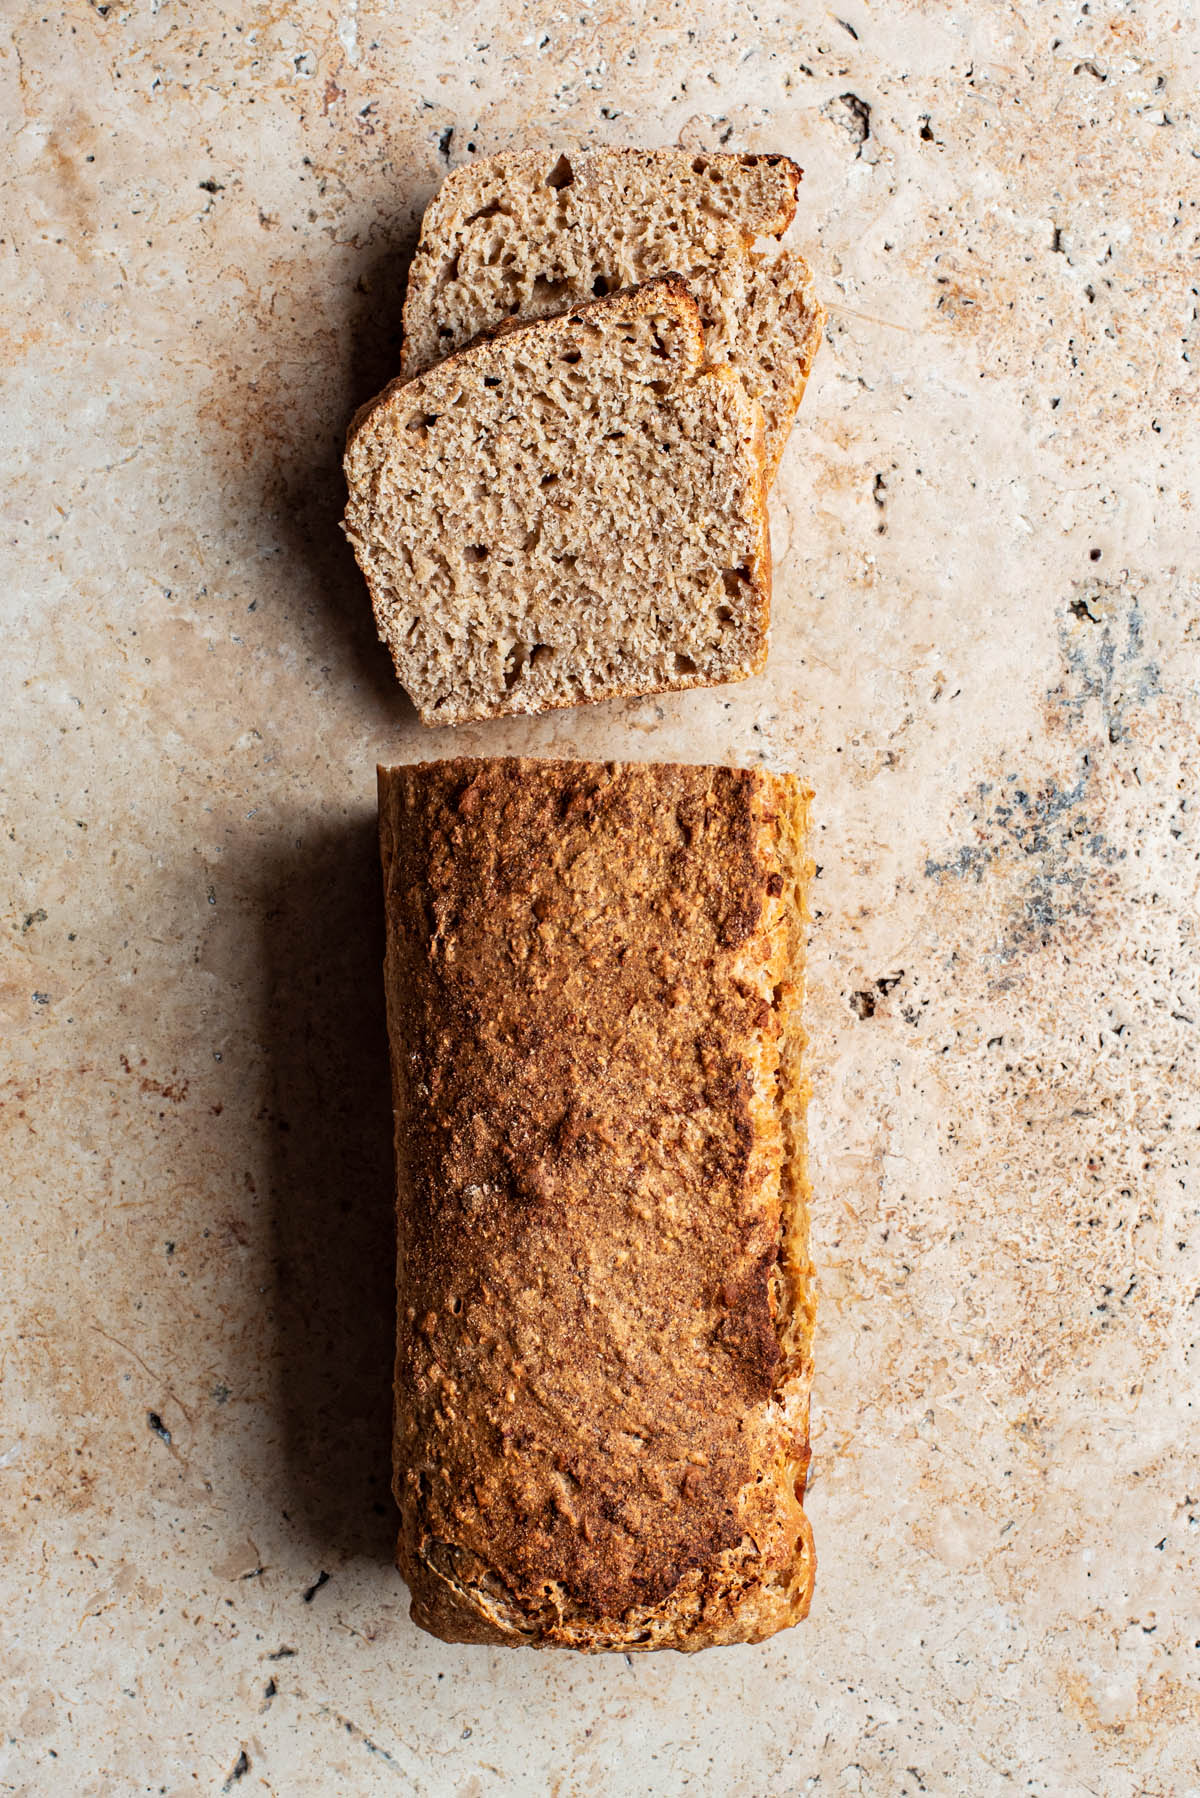 Sandwich bread with two slices cut, top down view.